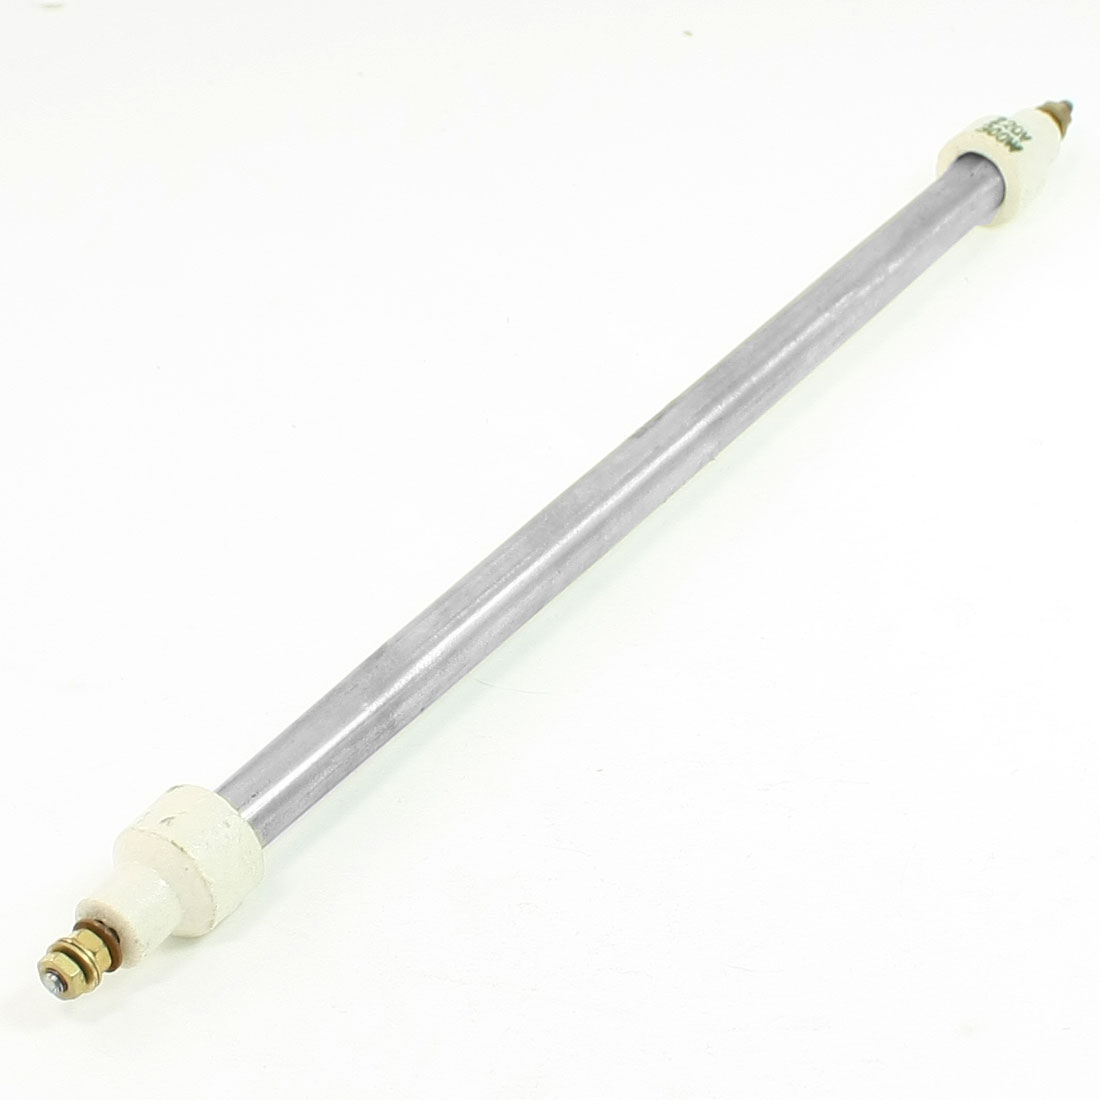 300W 220V Ceramic Dual End Heating Element Heater for Disinfection Cabinet